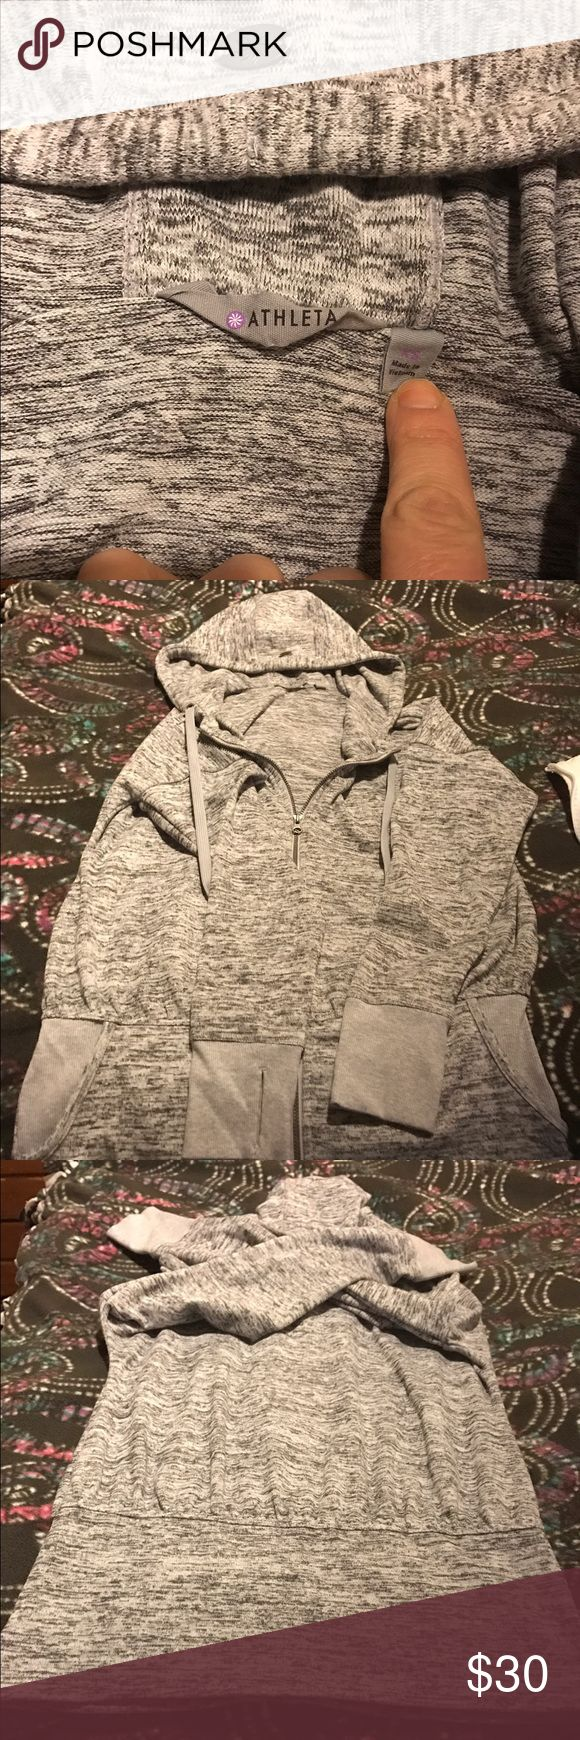 Athleta Zip Up Hoodie- Slightly Used. Size XS Athleta Zip Up Hoodie. Size XS. Grey in color. Slightly used. This was a Christmas gift to me, but I'm too petite and need an XXS in Athleta merchandise. There is no evidence of wear, no tears, no snags, hoodie is in excellent condition. Athleta Tops Sweatshirts & Hoodies